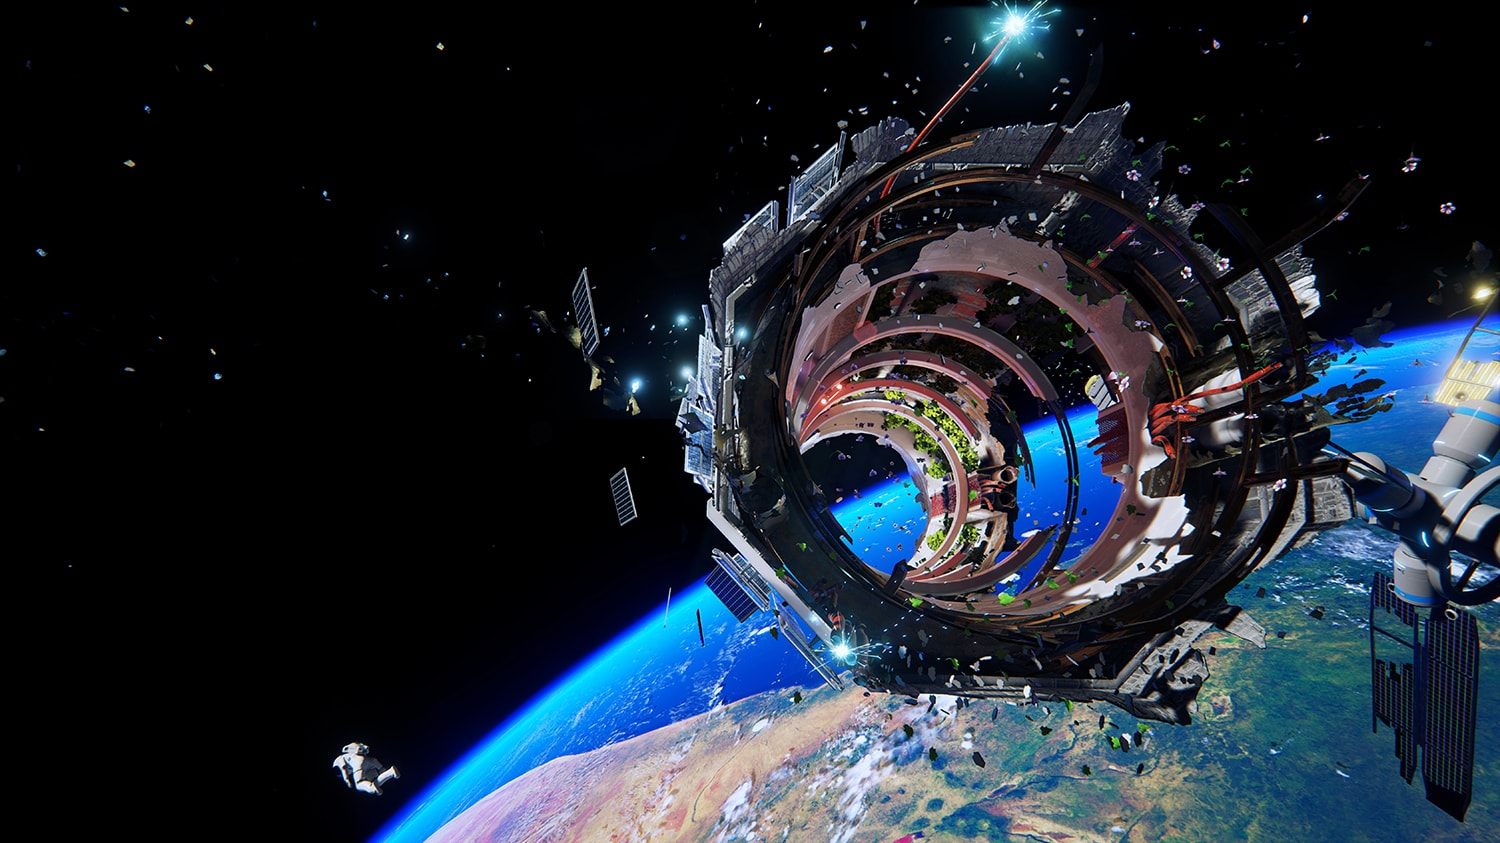 Adr1ft — DarkStation